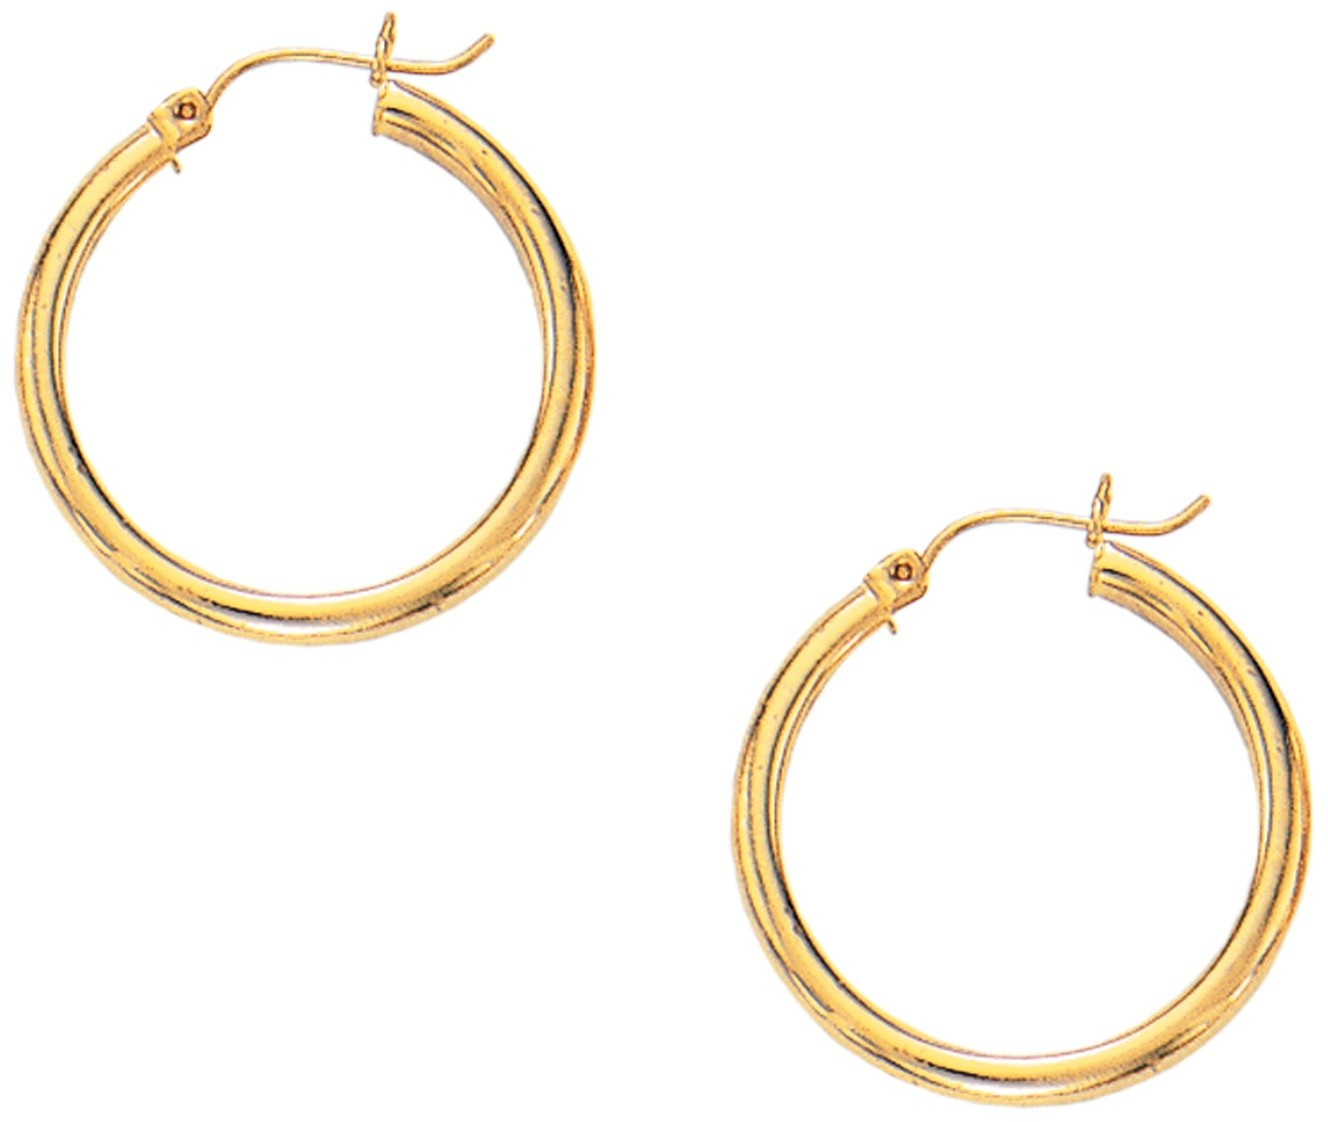 "10K Yellow Gold 3.0mm (1/8"") Super Lite Tube Hoop Earrings"